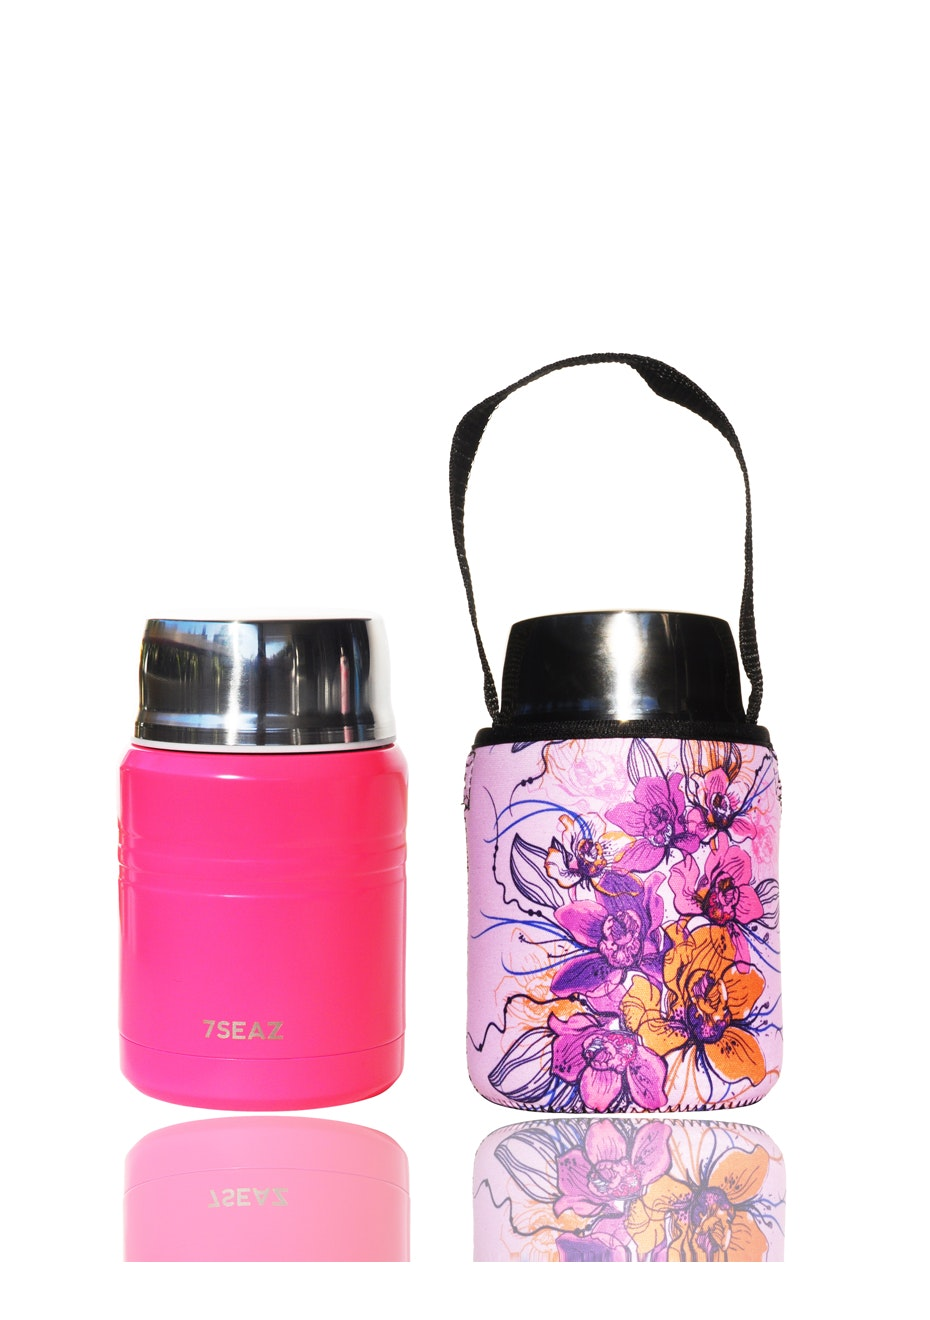 BBBYO - Foodie Insulated lunch container + carry cover 500 ml (Floral print)- Bright pinl